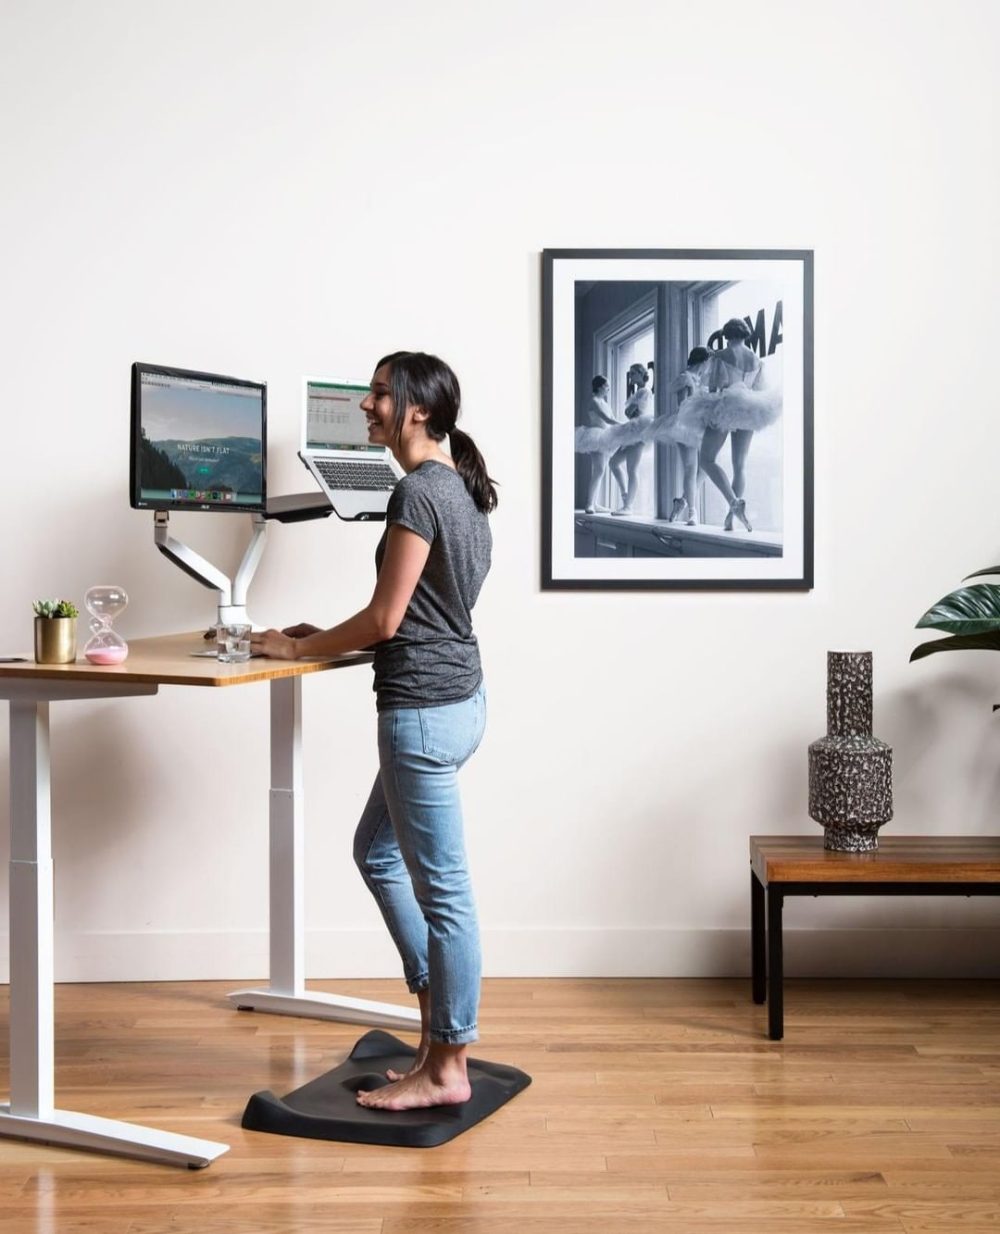 5 Best Standing Desk Mats For 2020 Reviews And Buying Guide Standingdesktopper Com In 2020 Best Standing Desk Standing Desk Mat Anti Fatigue Mat